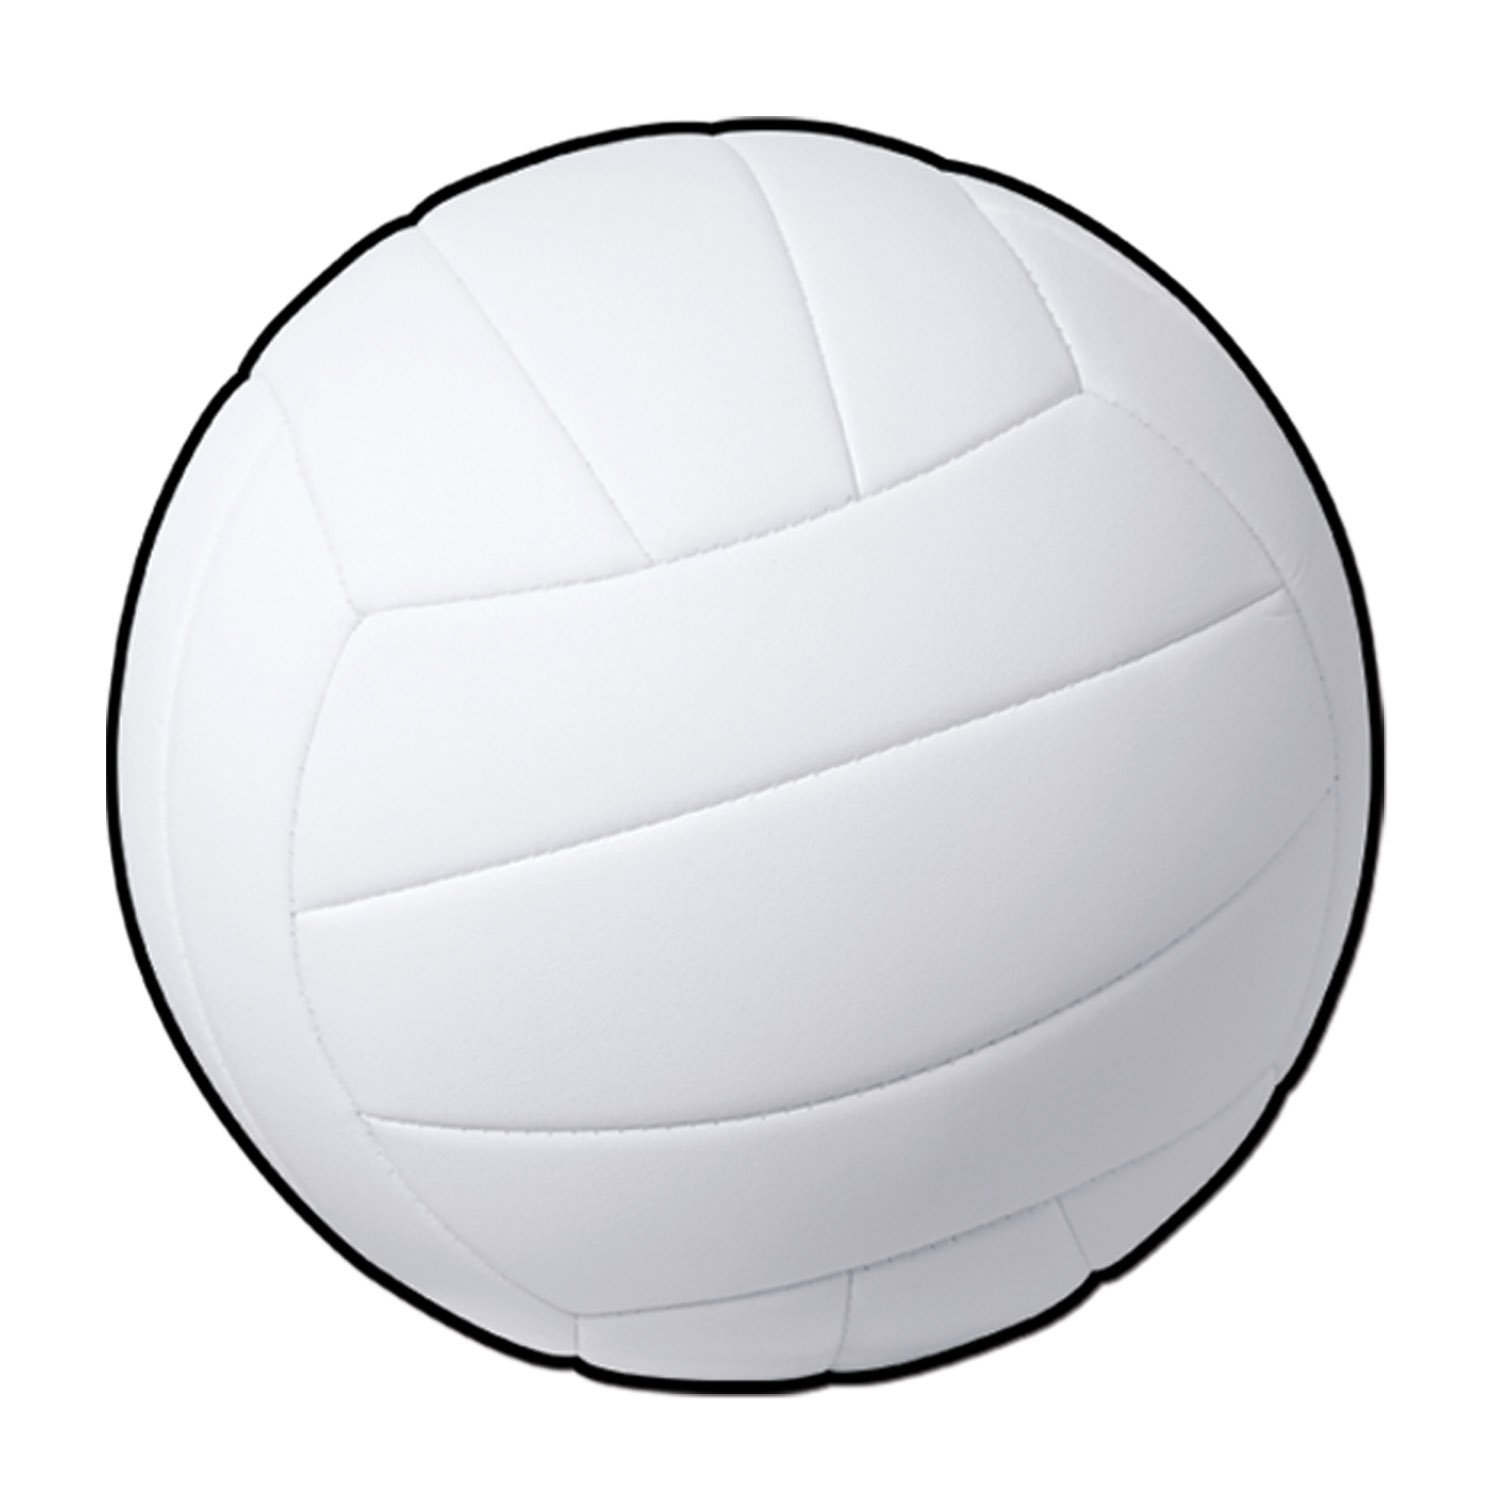 Beistle 24-Pack Volleyball Cutout, 13-1/2-Inch